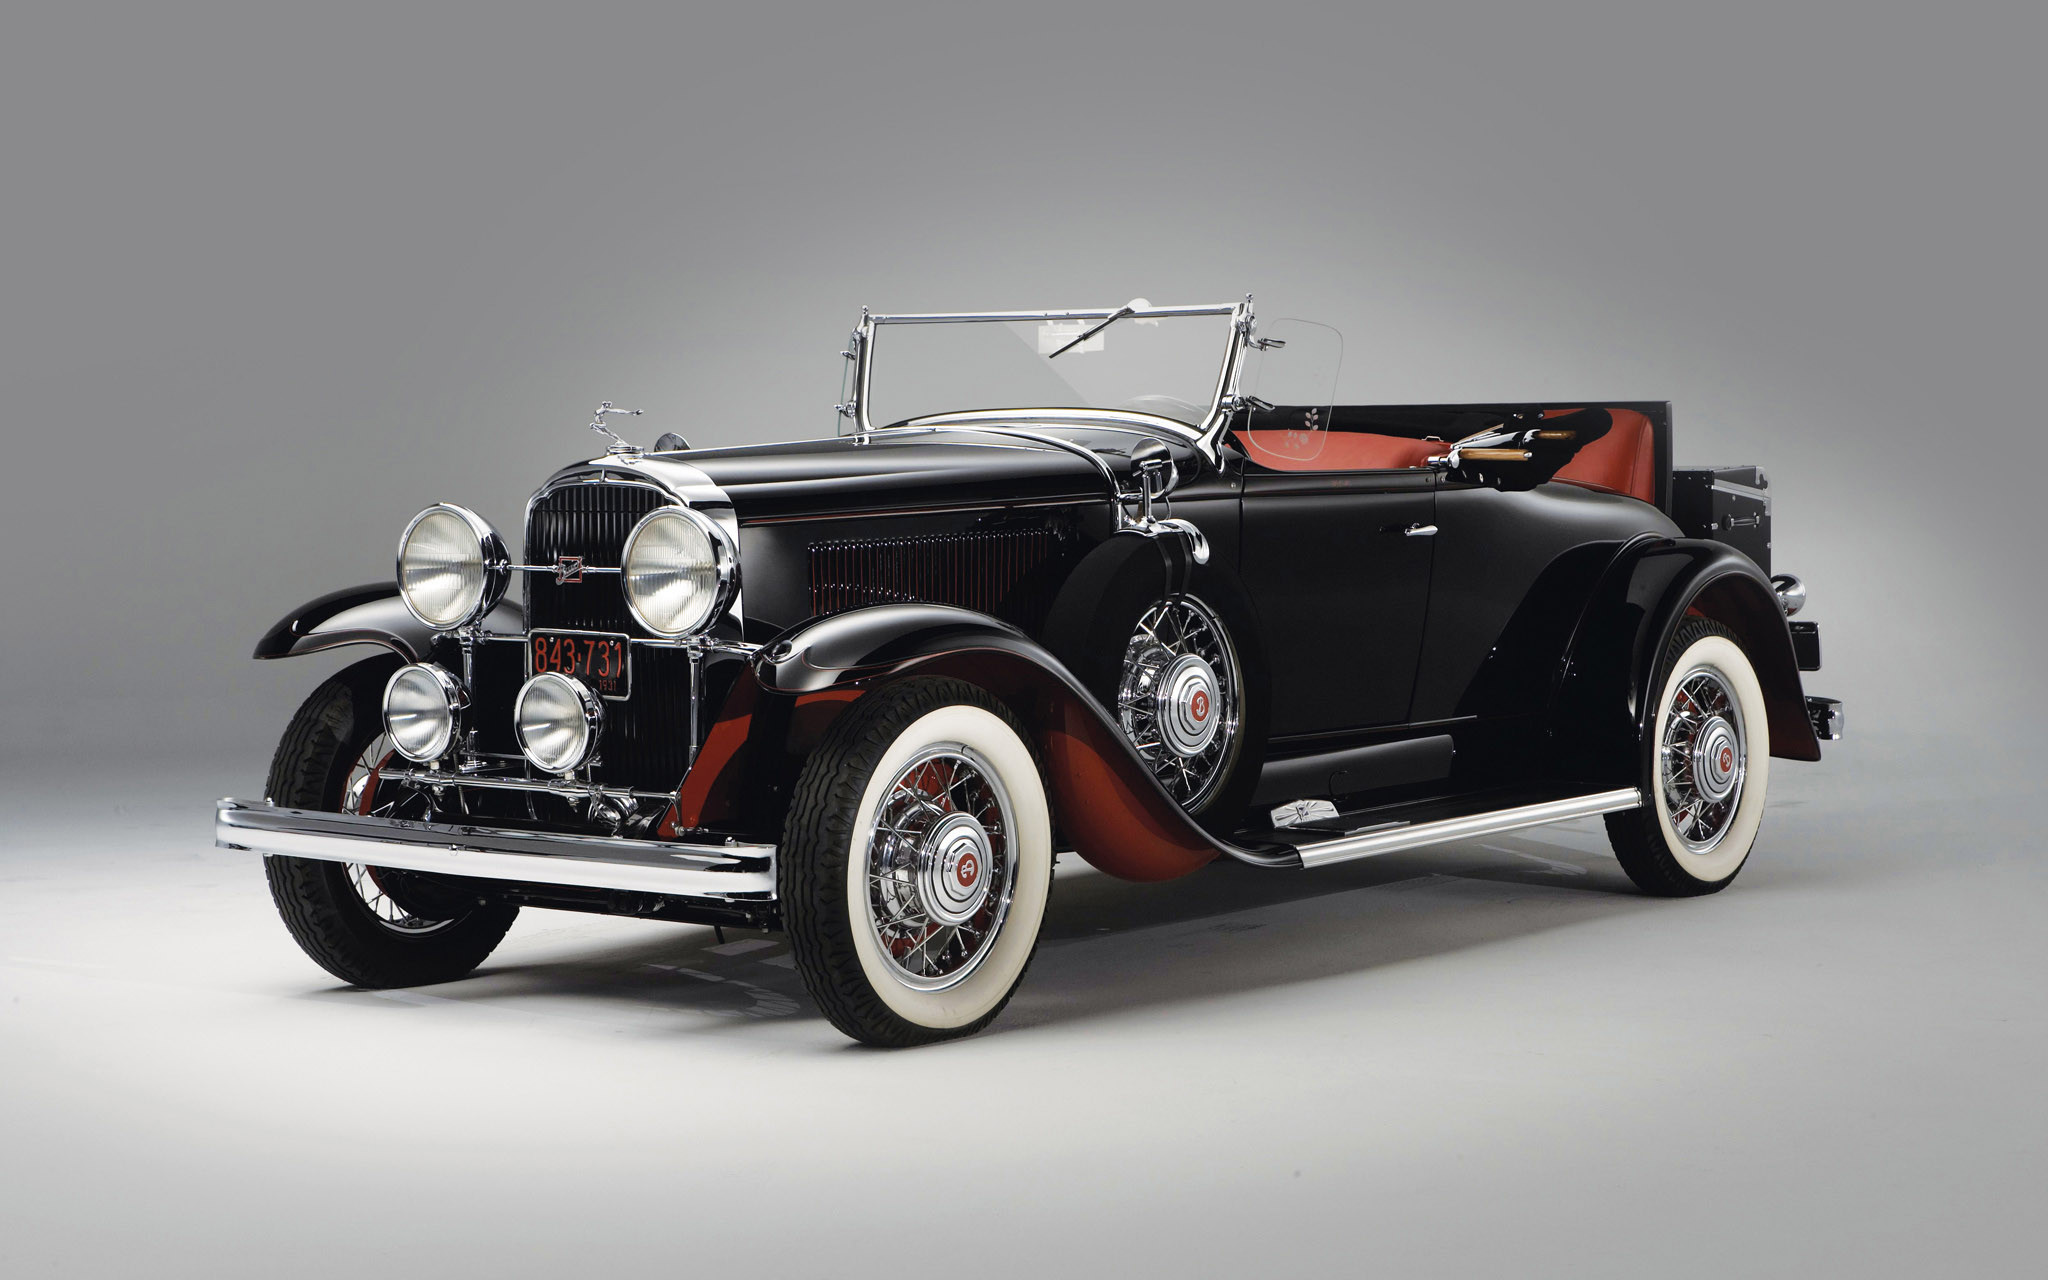 Res: 2048x1280, Classic Car High Quality Background on Walls Cover